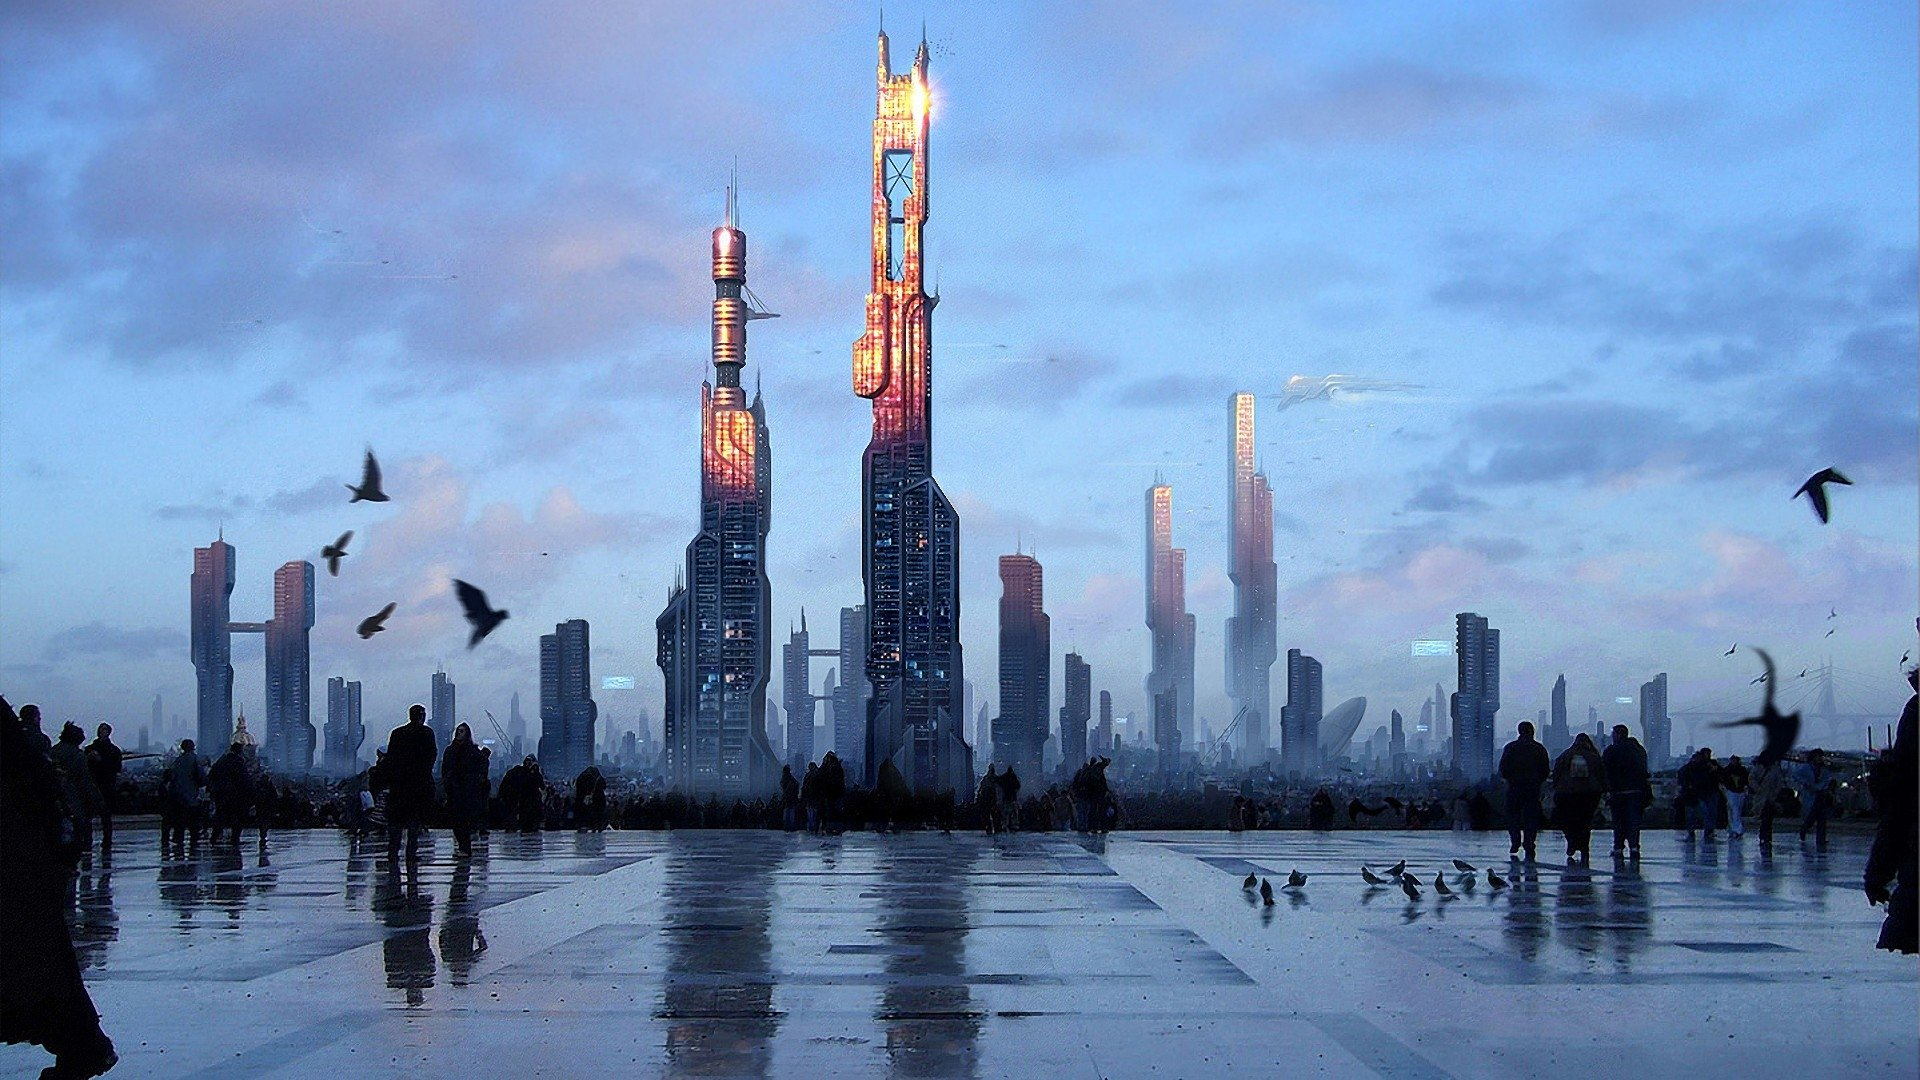 Sci Fi - City  Building Cityscape Digital Art Futuristic Paris Pigeon Sky Wallpaper